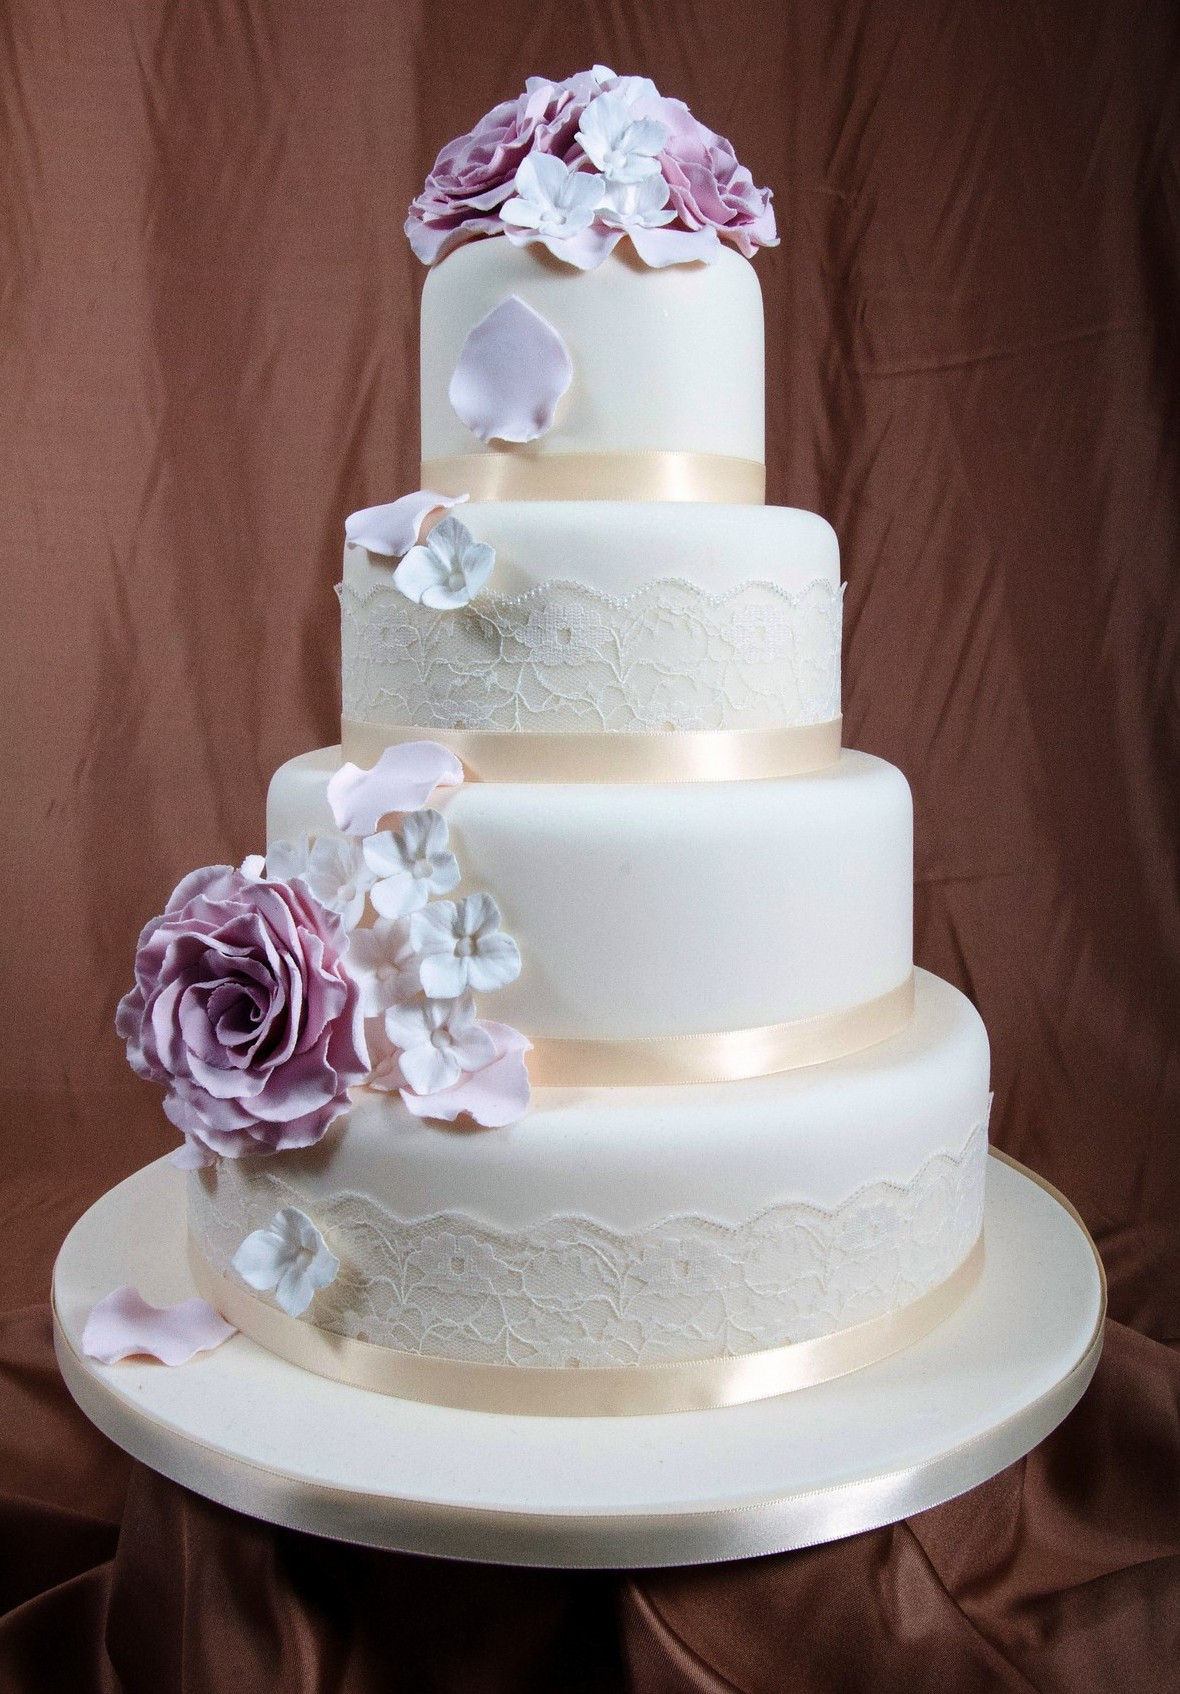 Wedding Cakes Blogs  Wedding Cake A Gallery of Cakes by Shelly WeddingDates